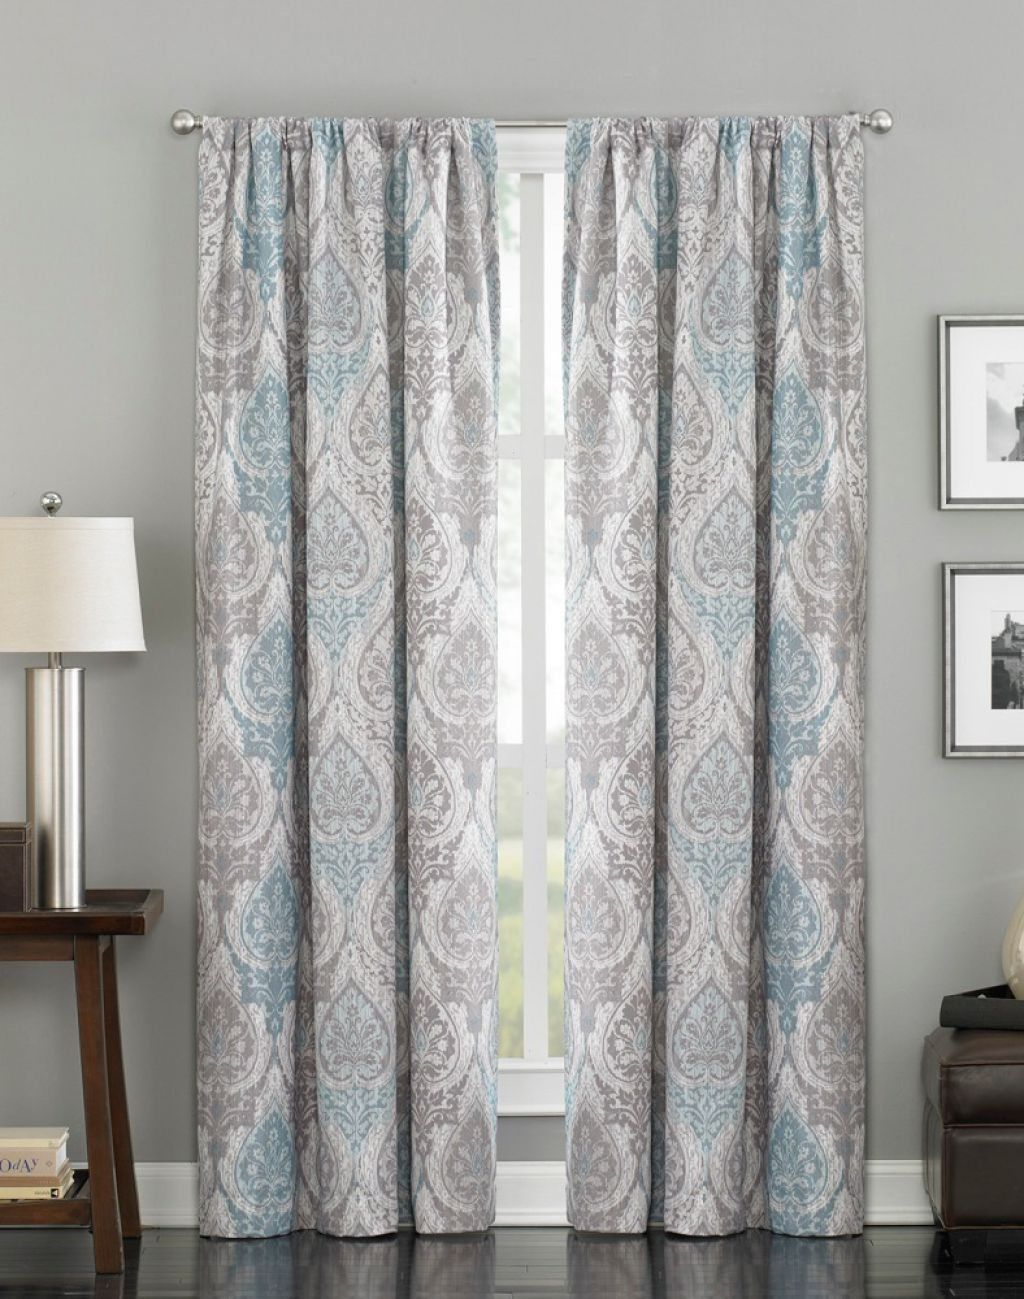 House Interior With Grey Walls And Modern Damask Curtains Stunning And Elegant Damask Curtains Curtains For Grey Walls Grey Walls Living Room Damask Curtains